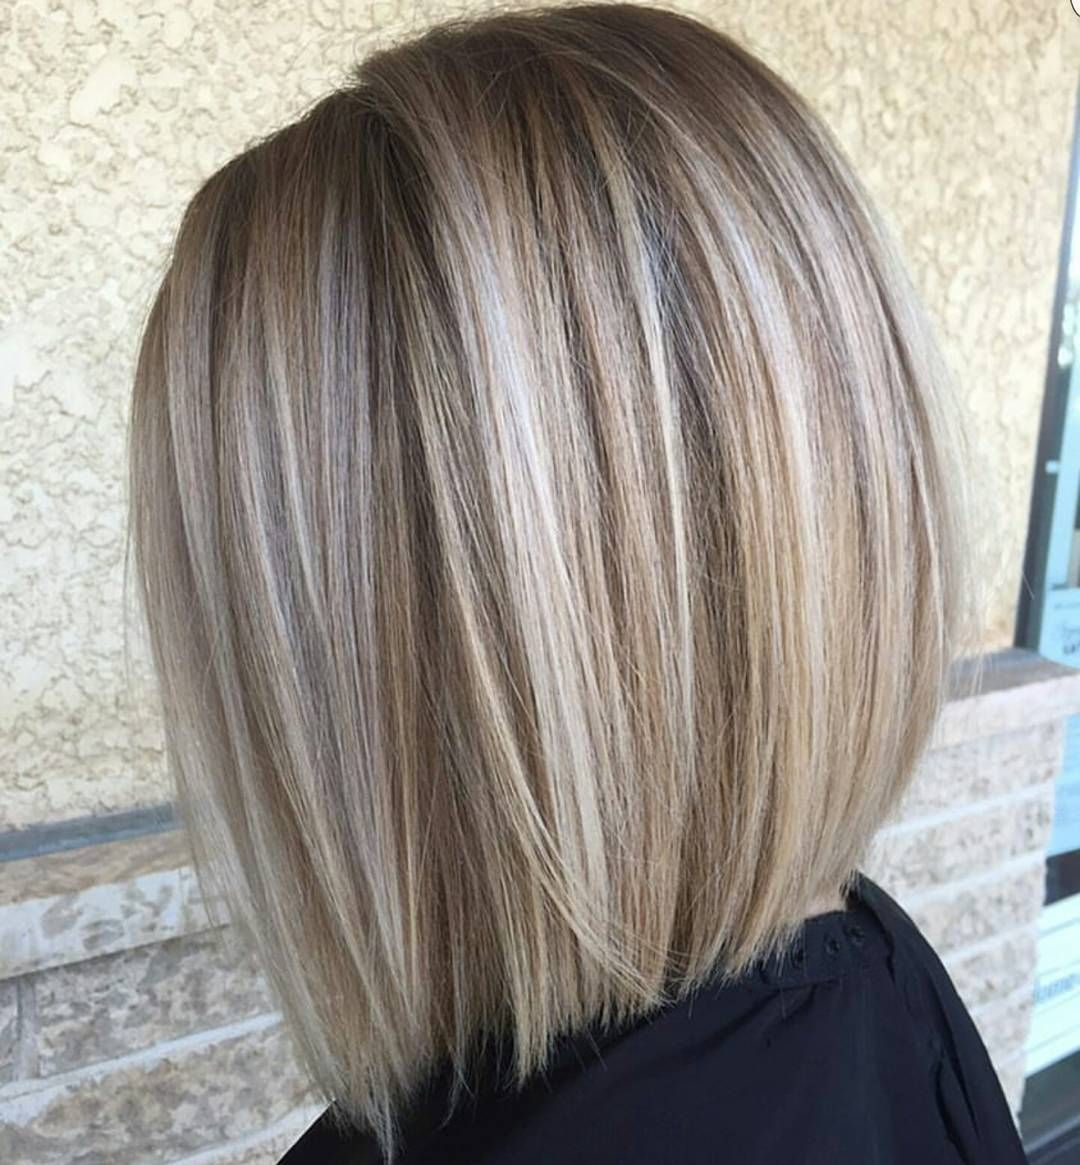 Ballayage Blond concernant how-to: toasted almond >>> | how-tos | pinterest | almonds, hair